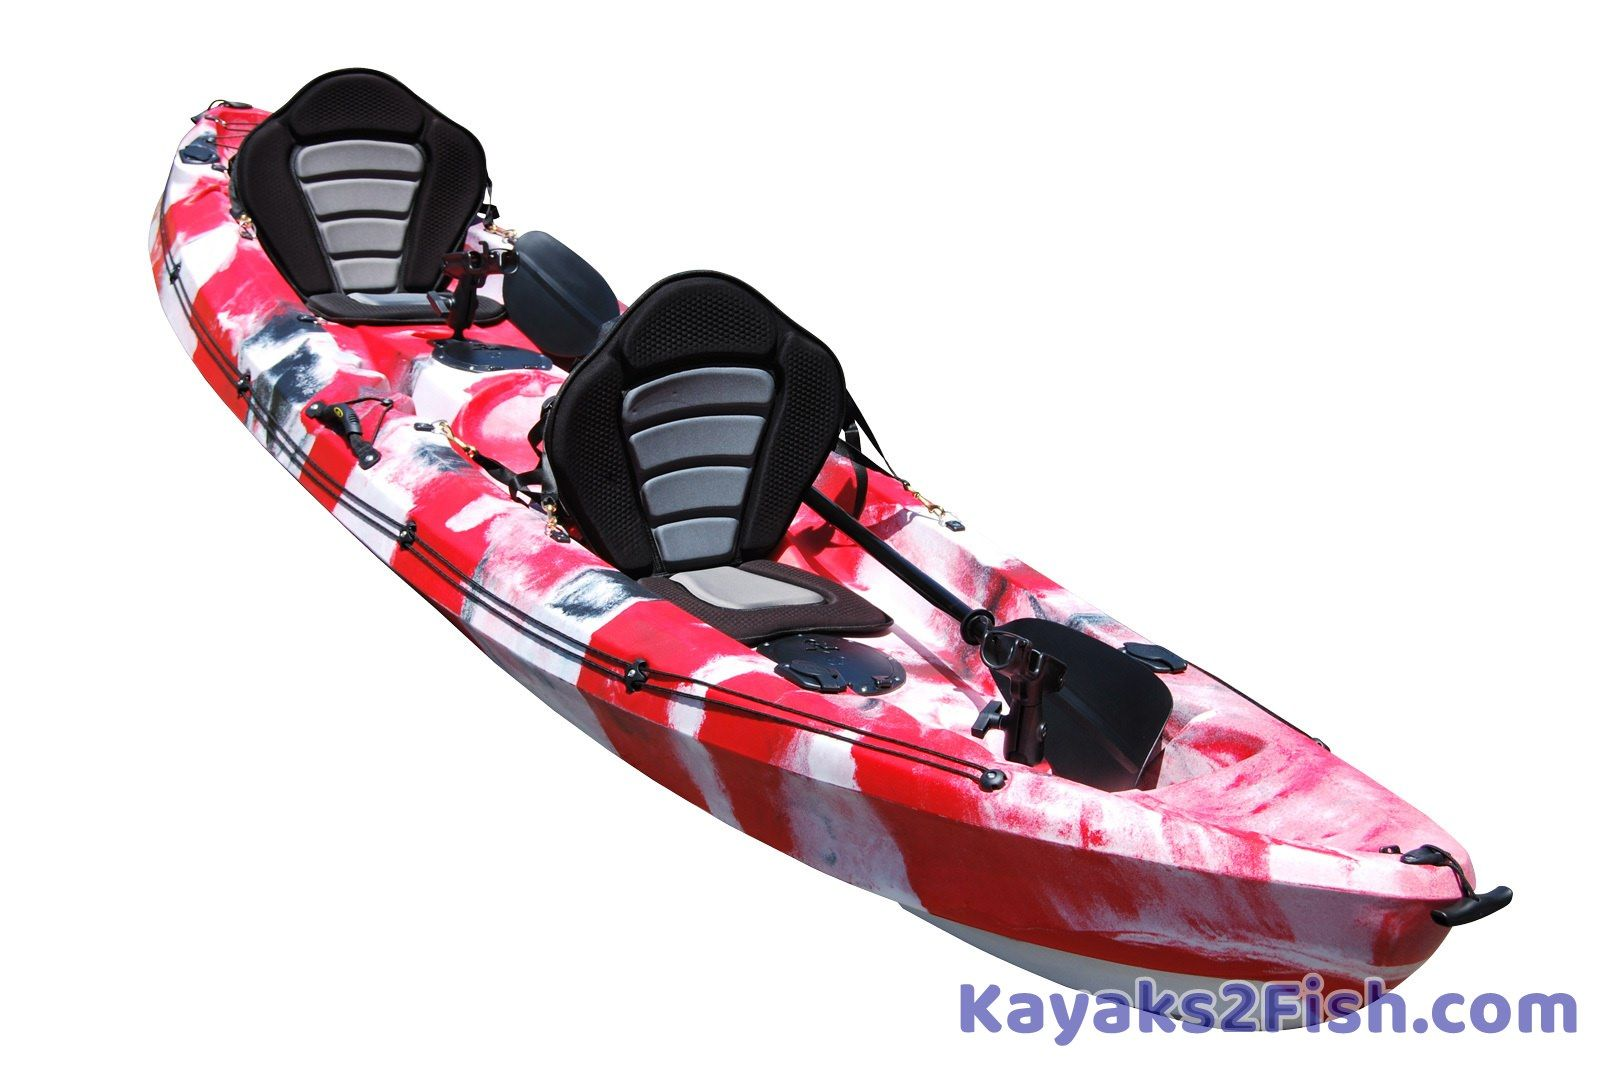 Tandem Fishing Kayak With Images Kayak Fishing Tandem Fishing